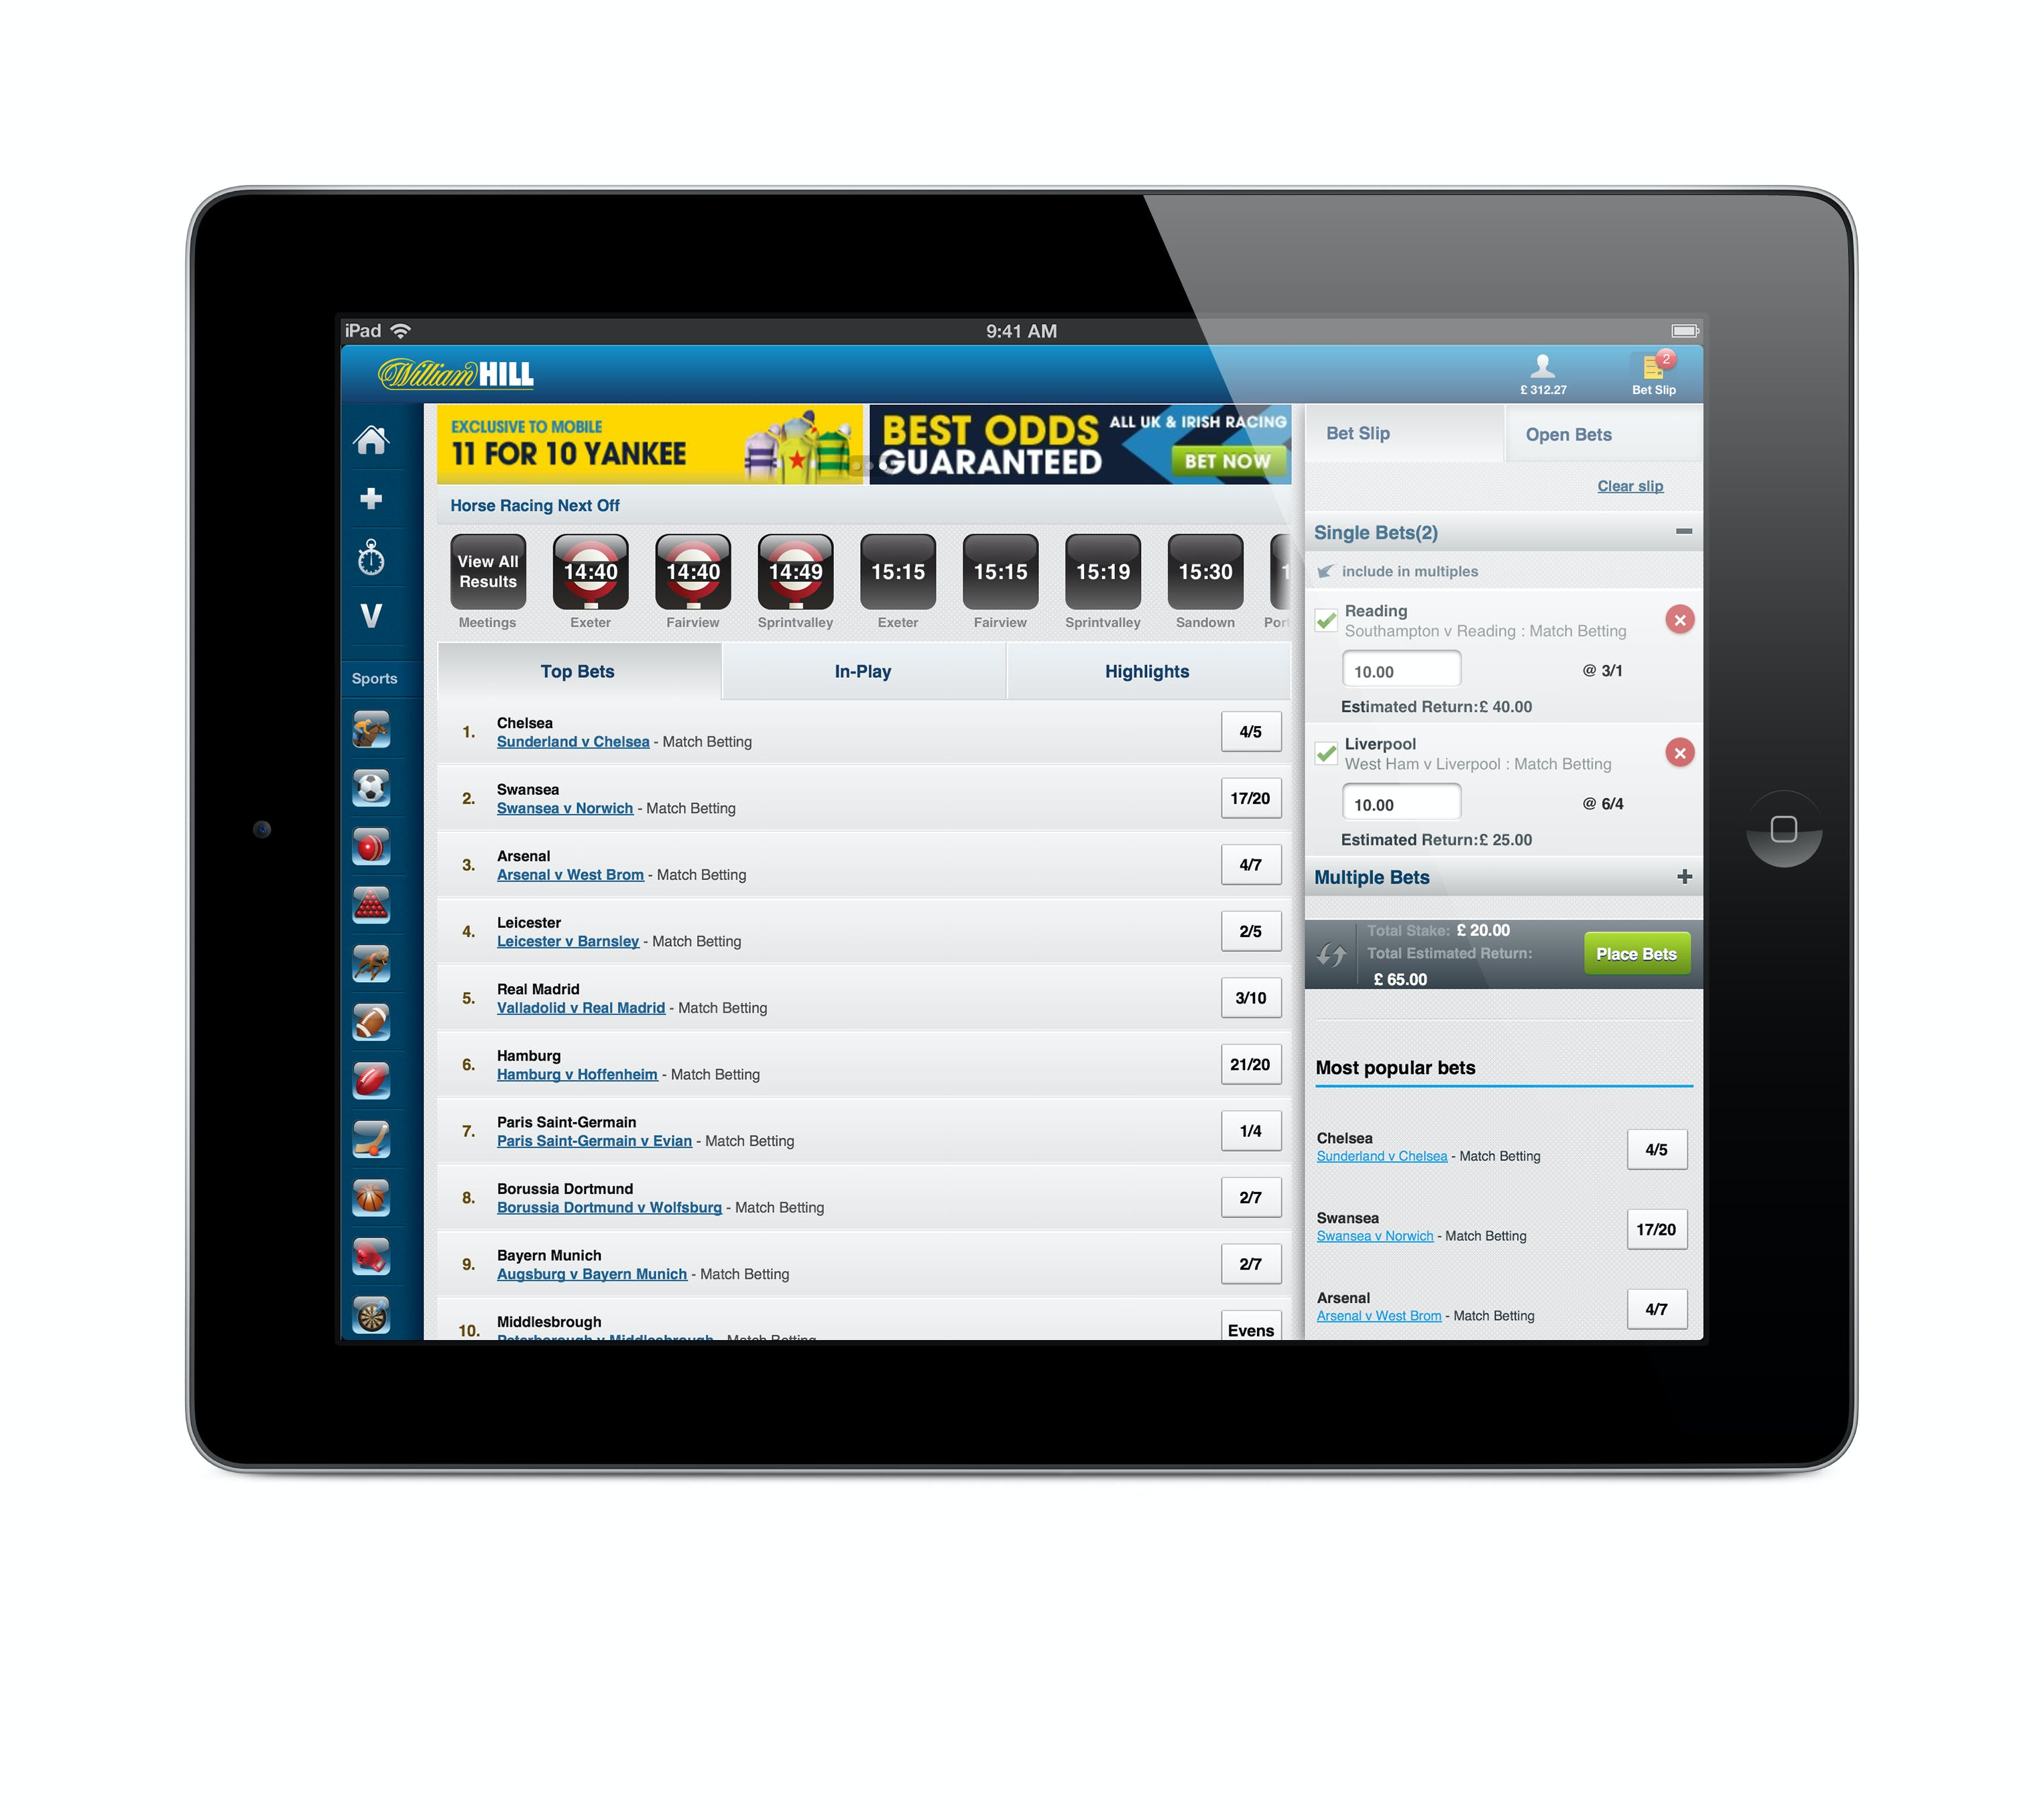 William Hill iPad app